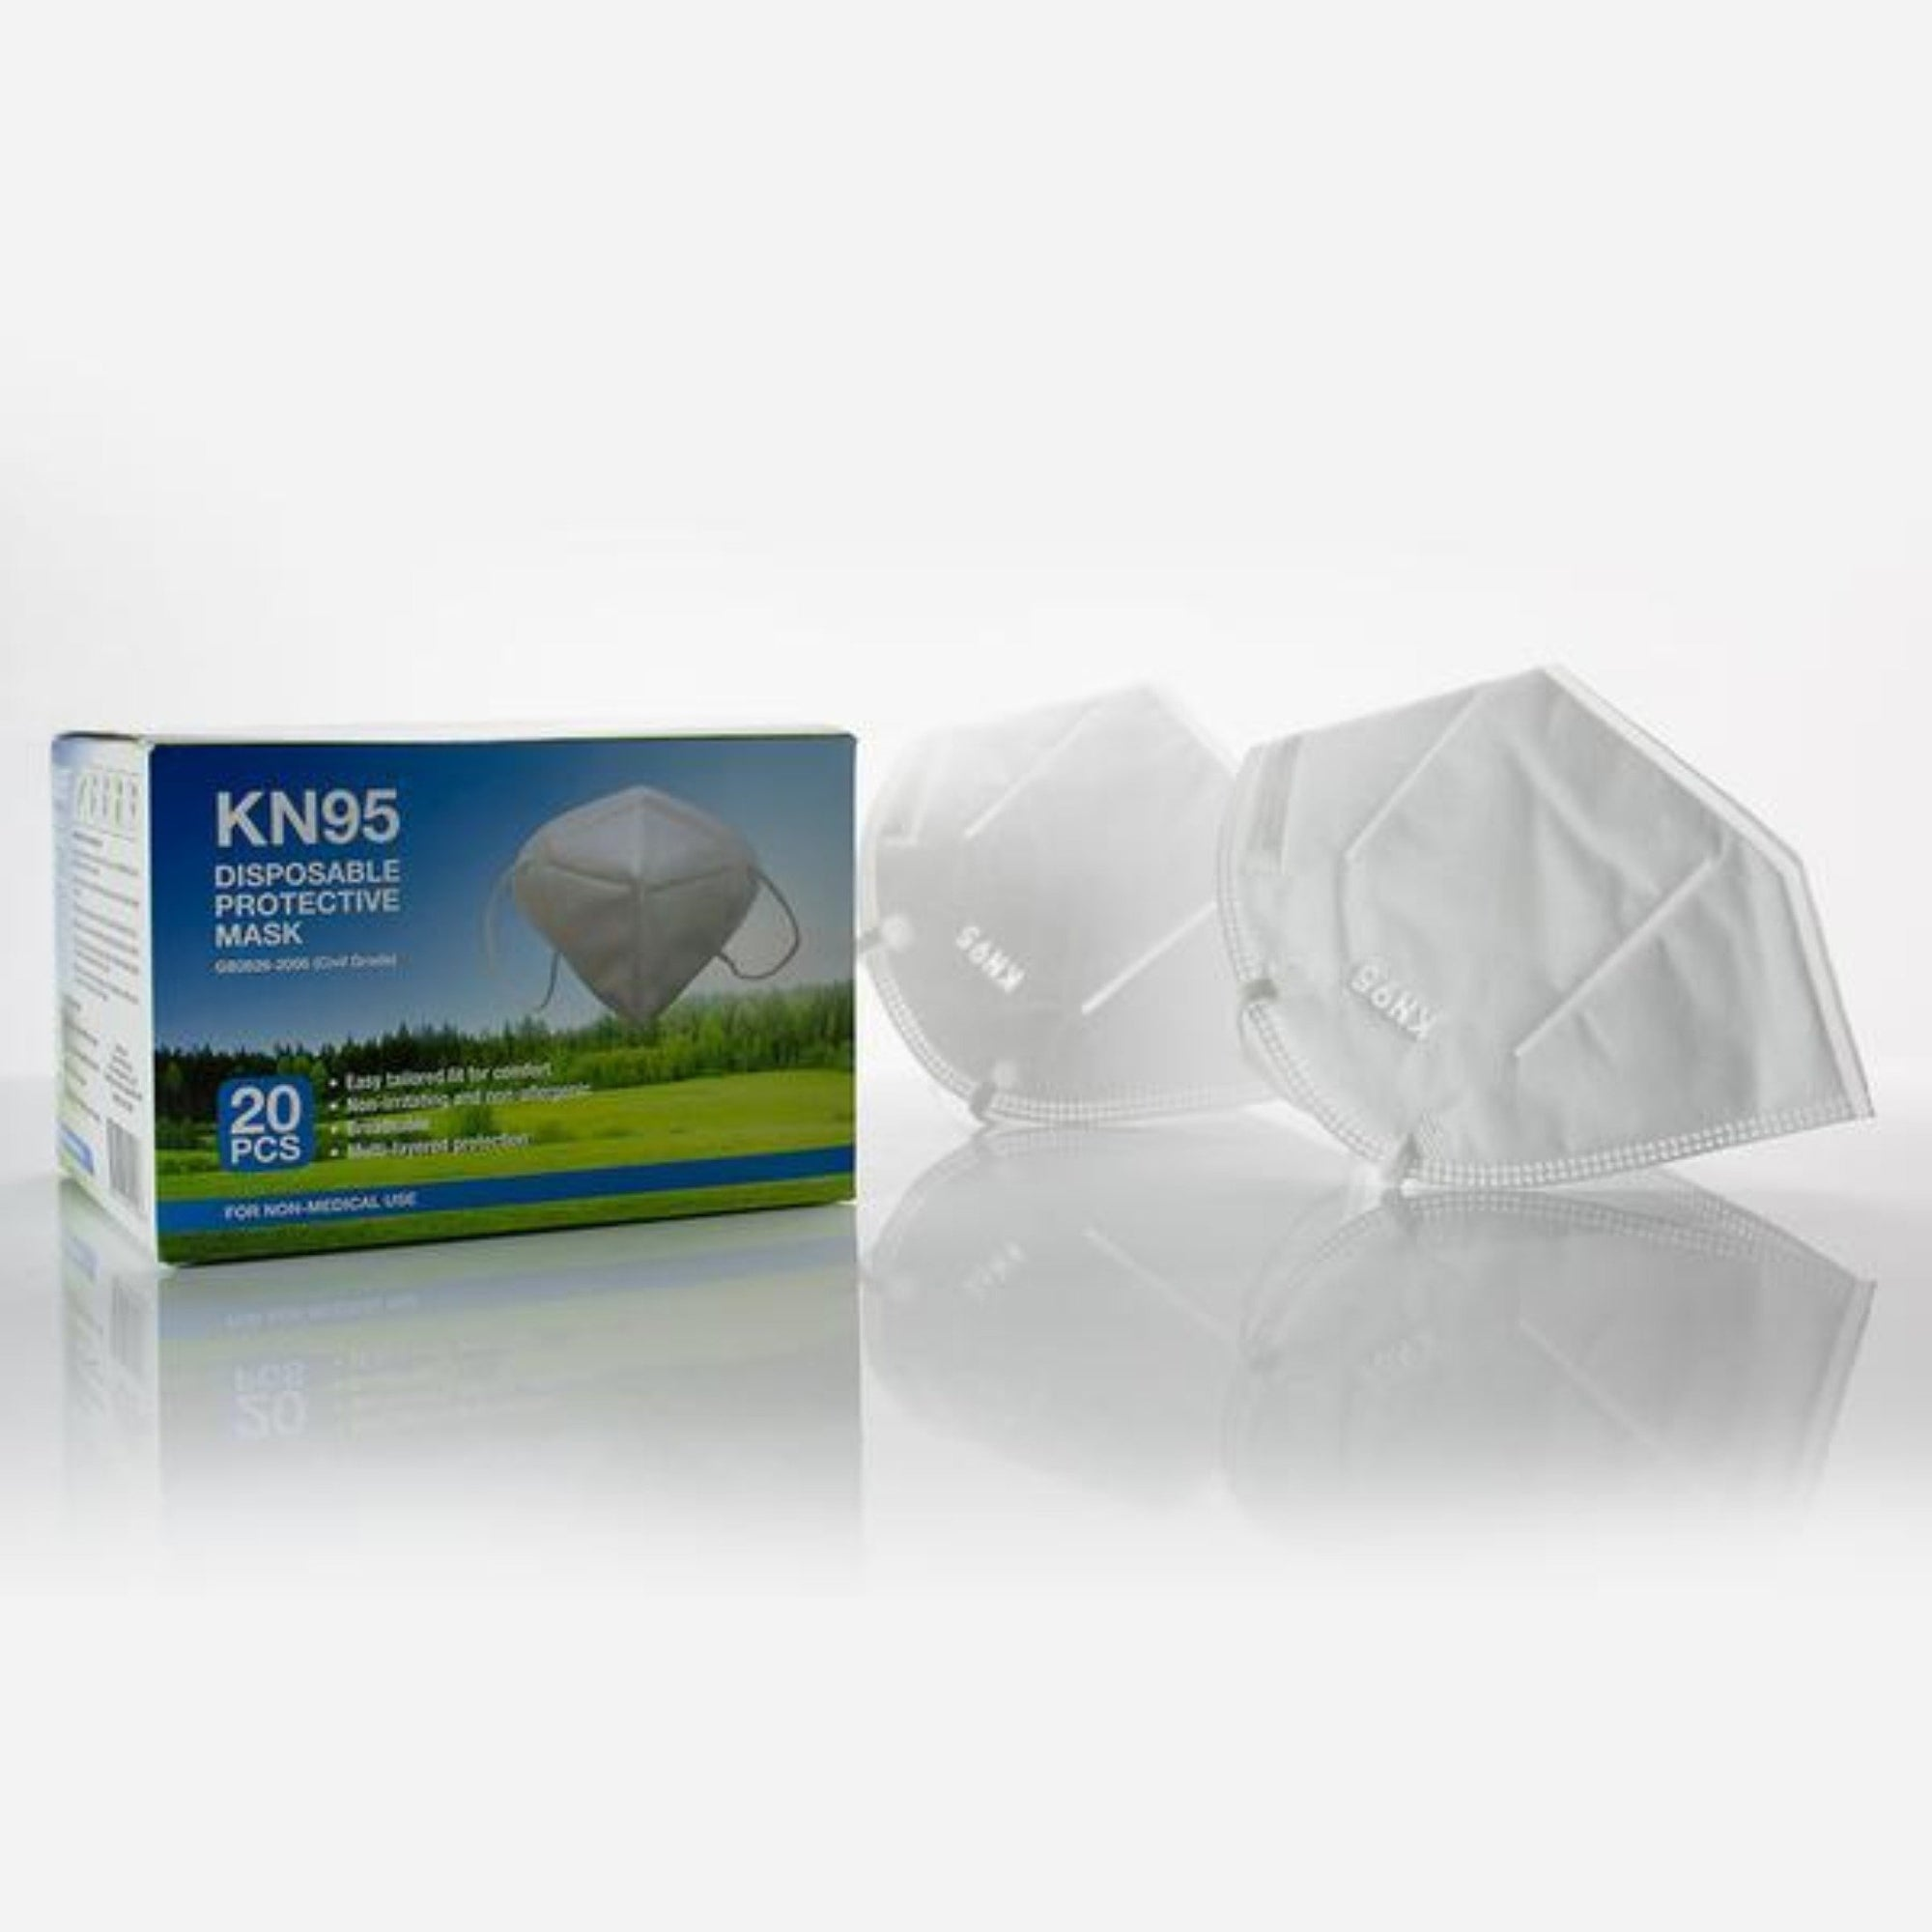 20 Pack KN95 DISPOSABLE PROTECTIVE MASK